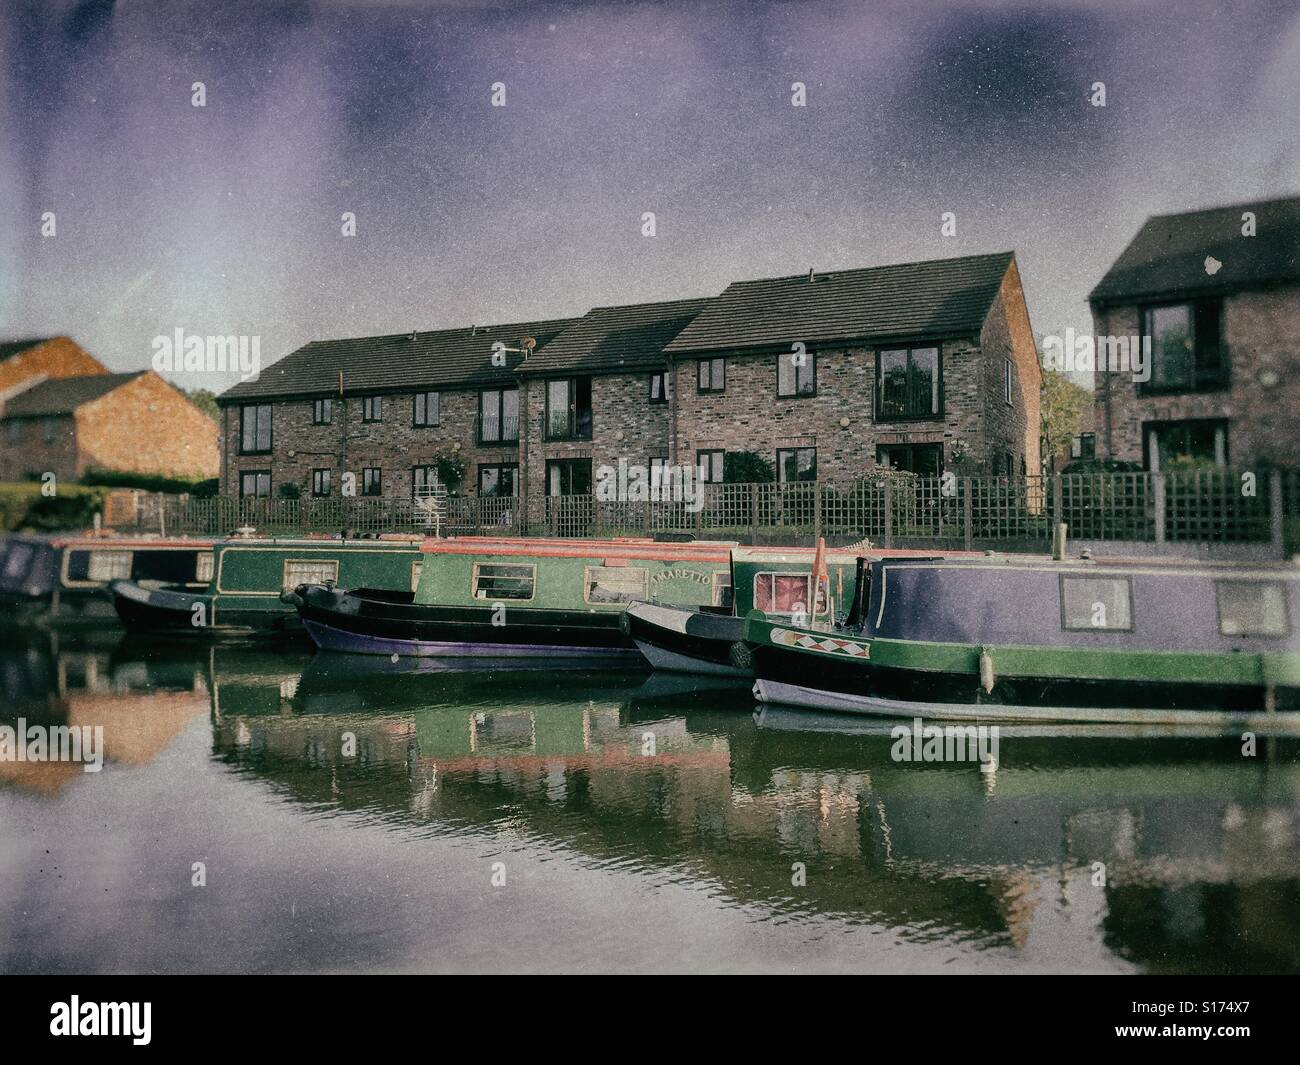 Narrowboats on the Bridgewater Canal in Lymm, Cheshire, UK - Stock Image